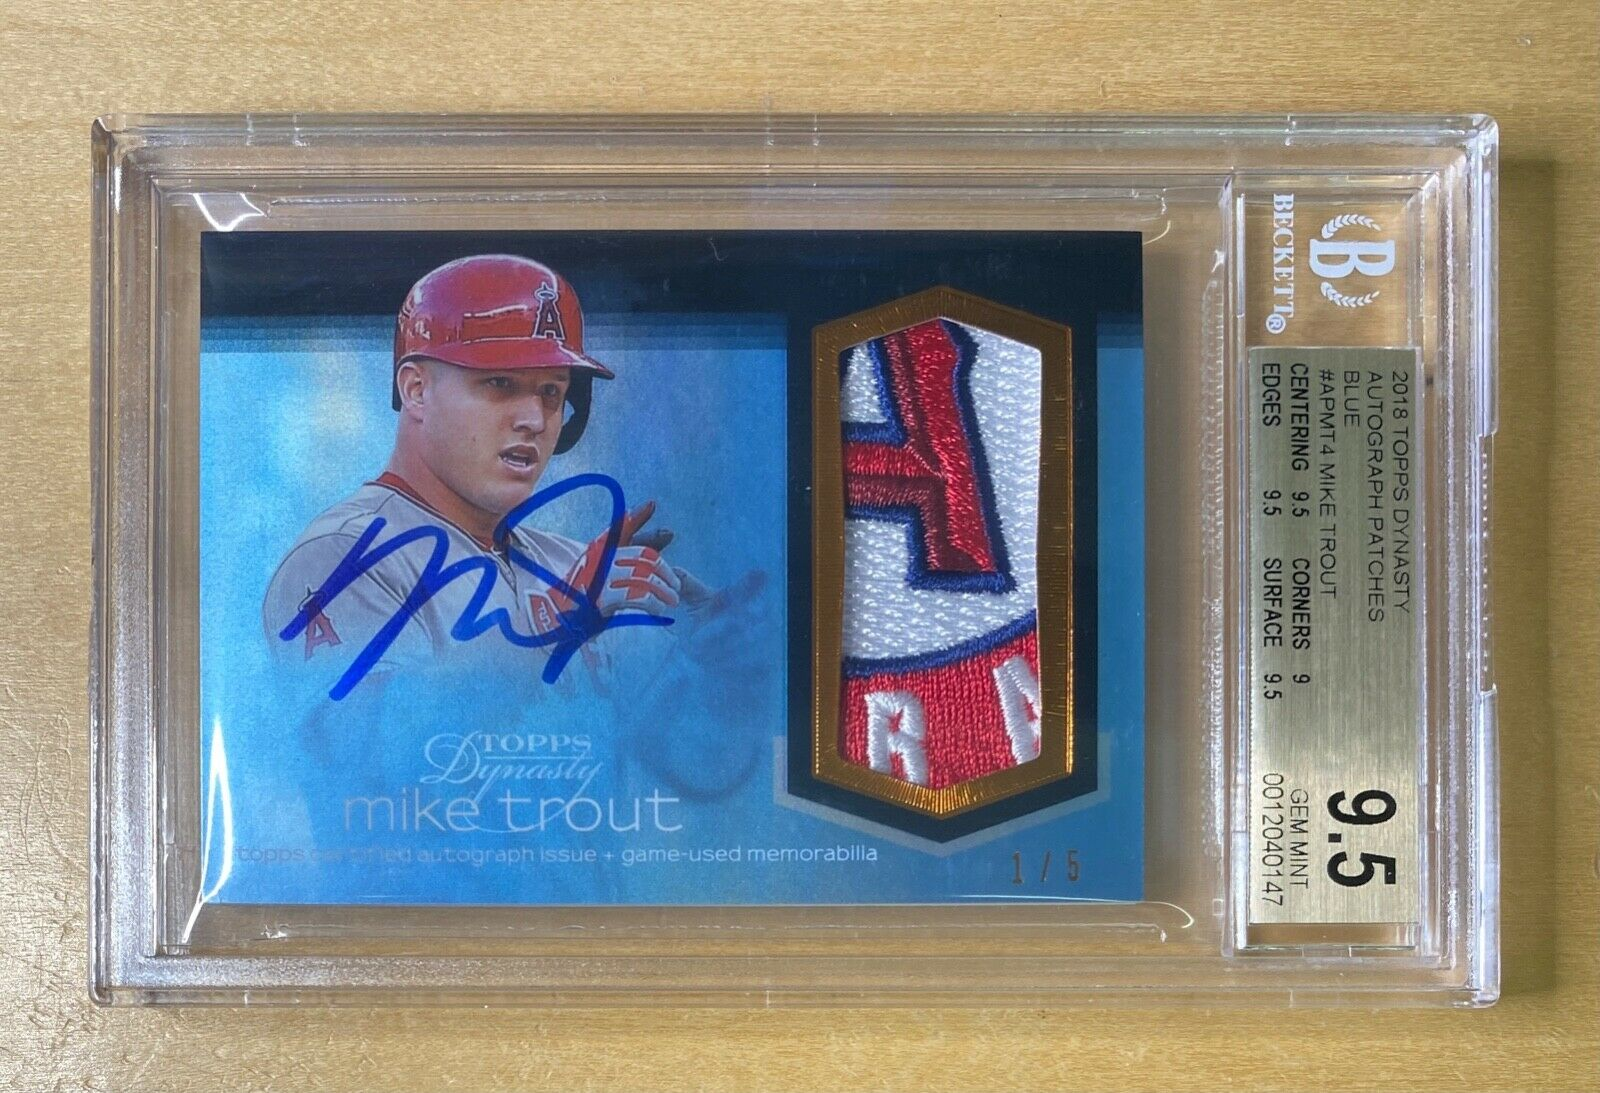 2018 Topps Dynasty MIKE TROUT Jersey Logo Patch Auto 1/5 BGS 9.5 Gem Mint Angels - Image 1